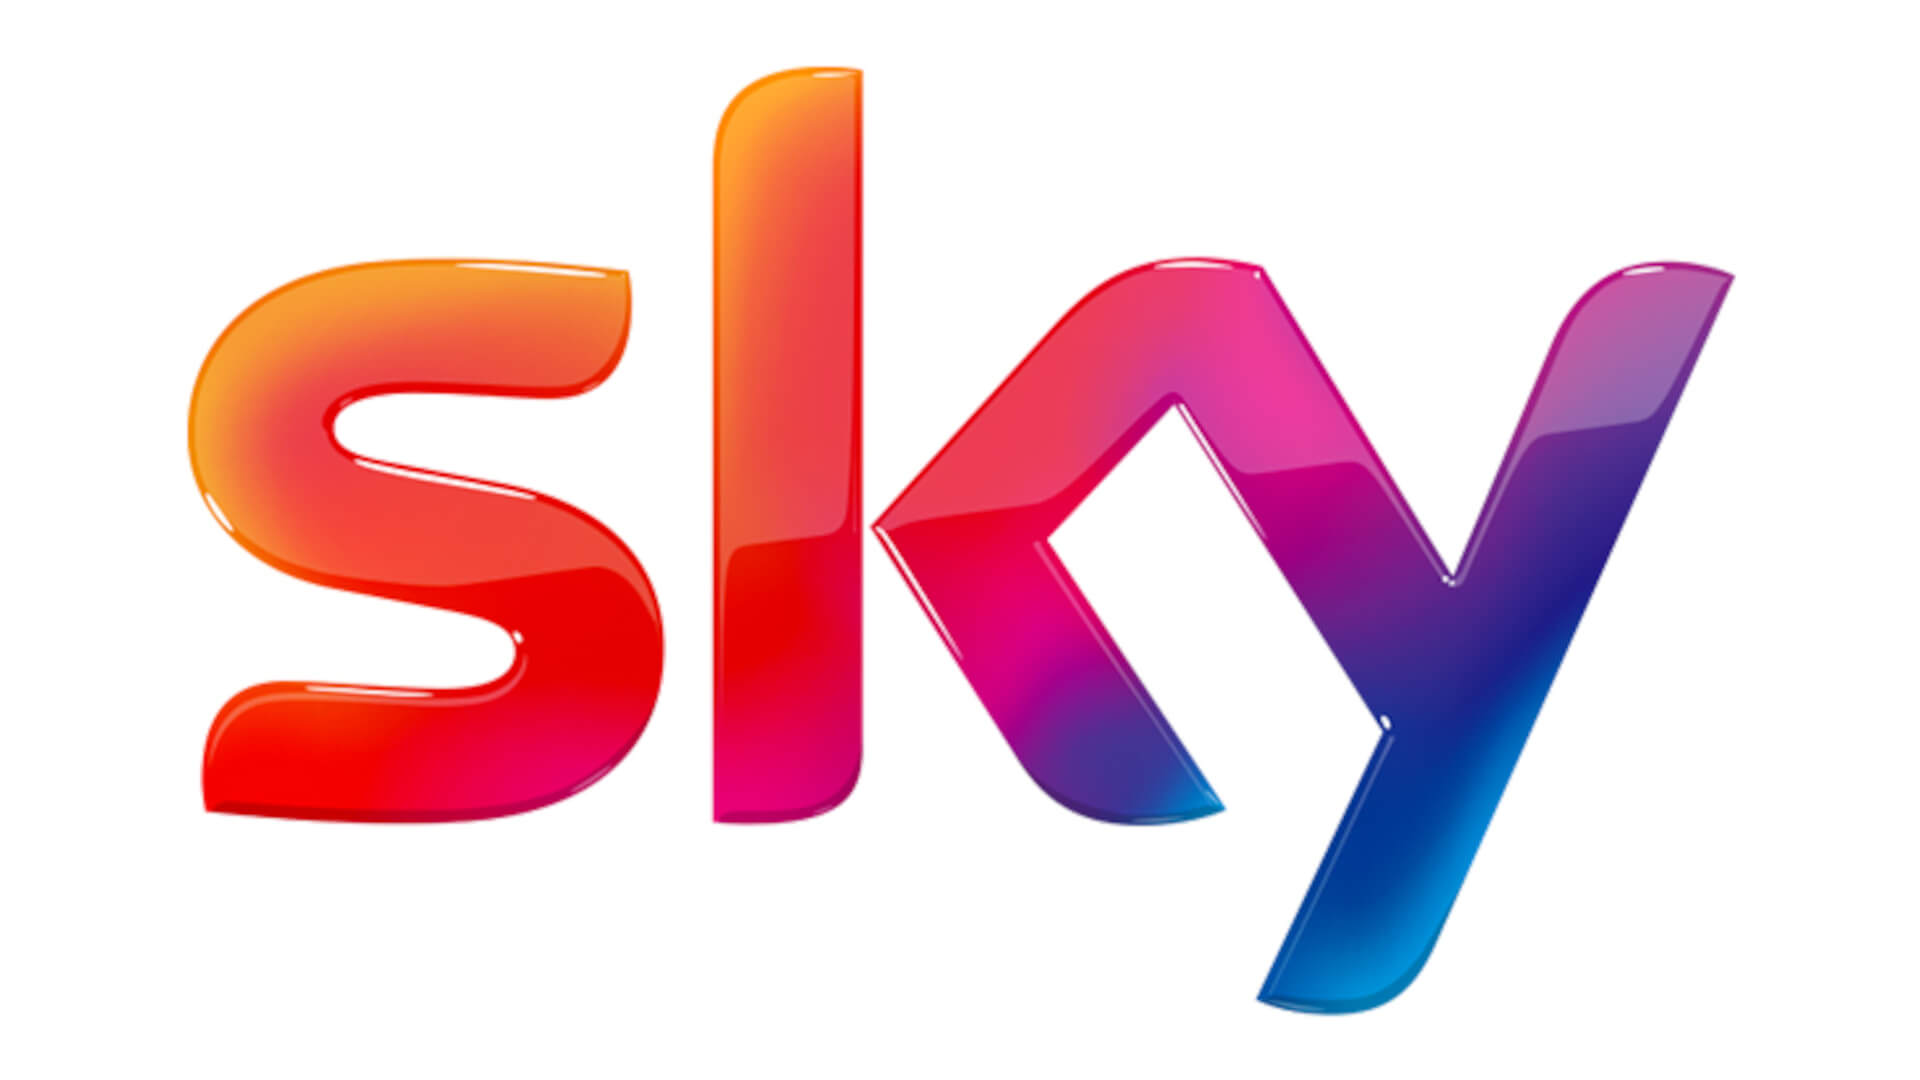 Sky Mediaset - Sky On Line TV Box - Sky acquista canale 8